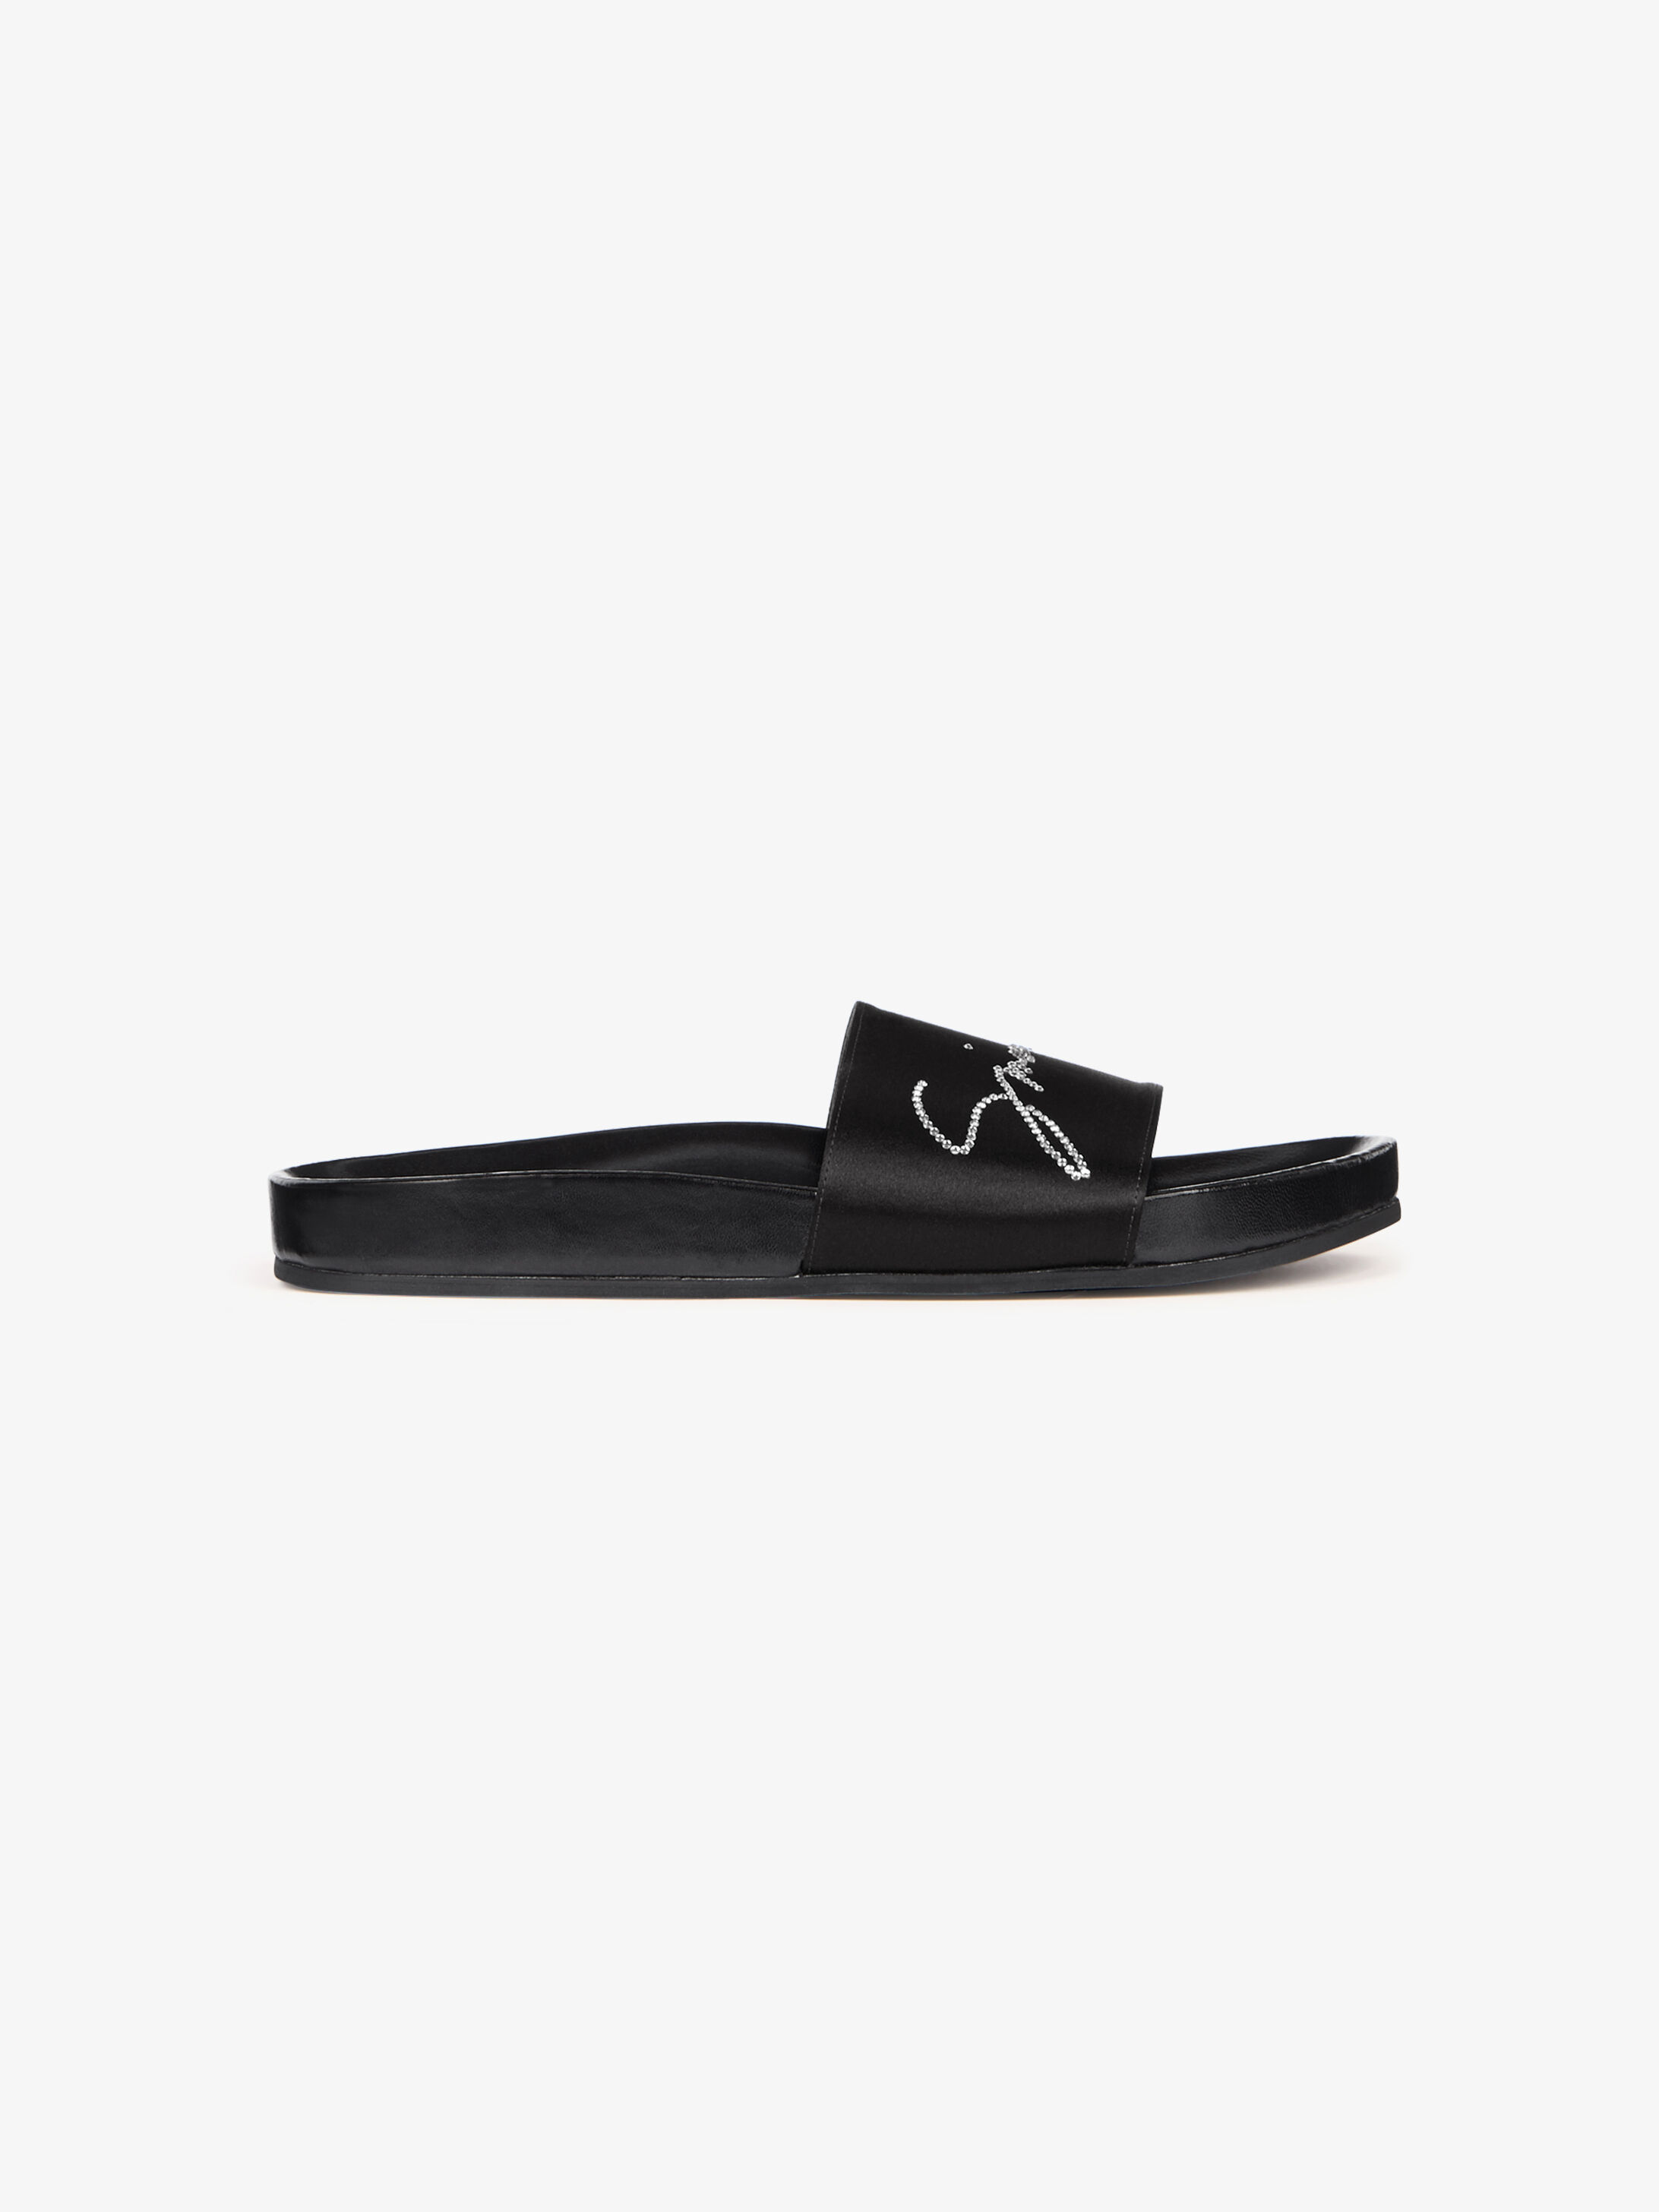 00374480c589 Women s Ballerinas and Flats collection by Givenchy.